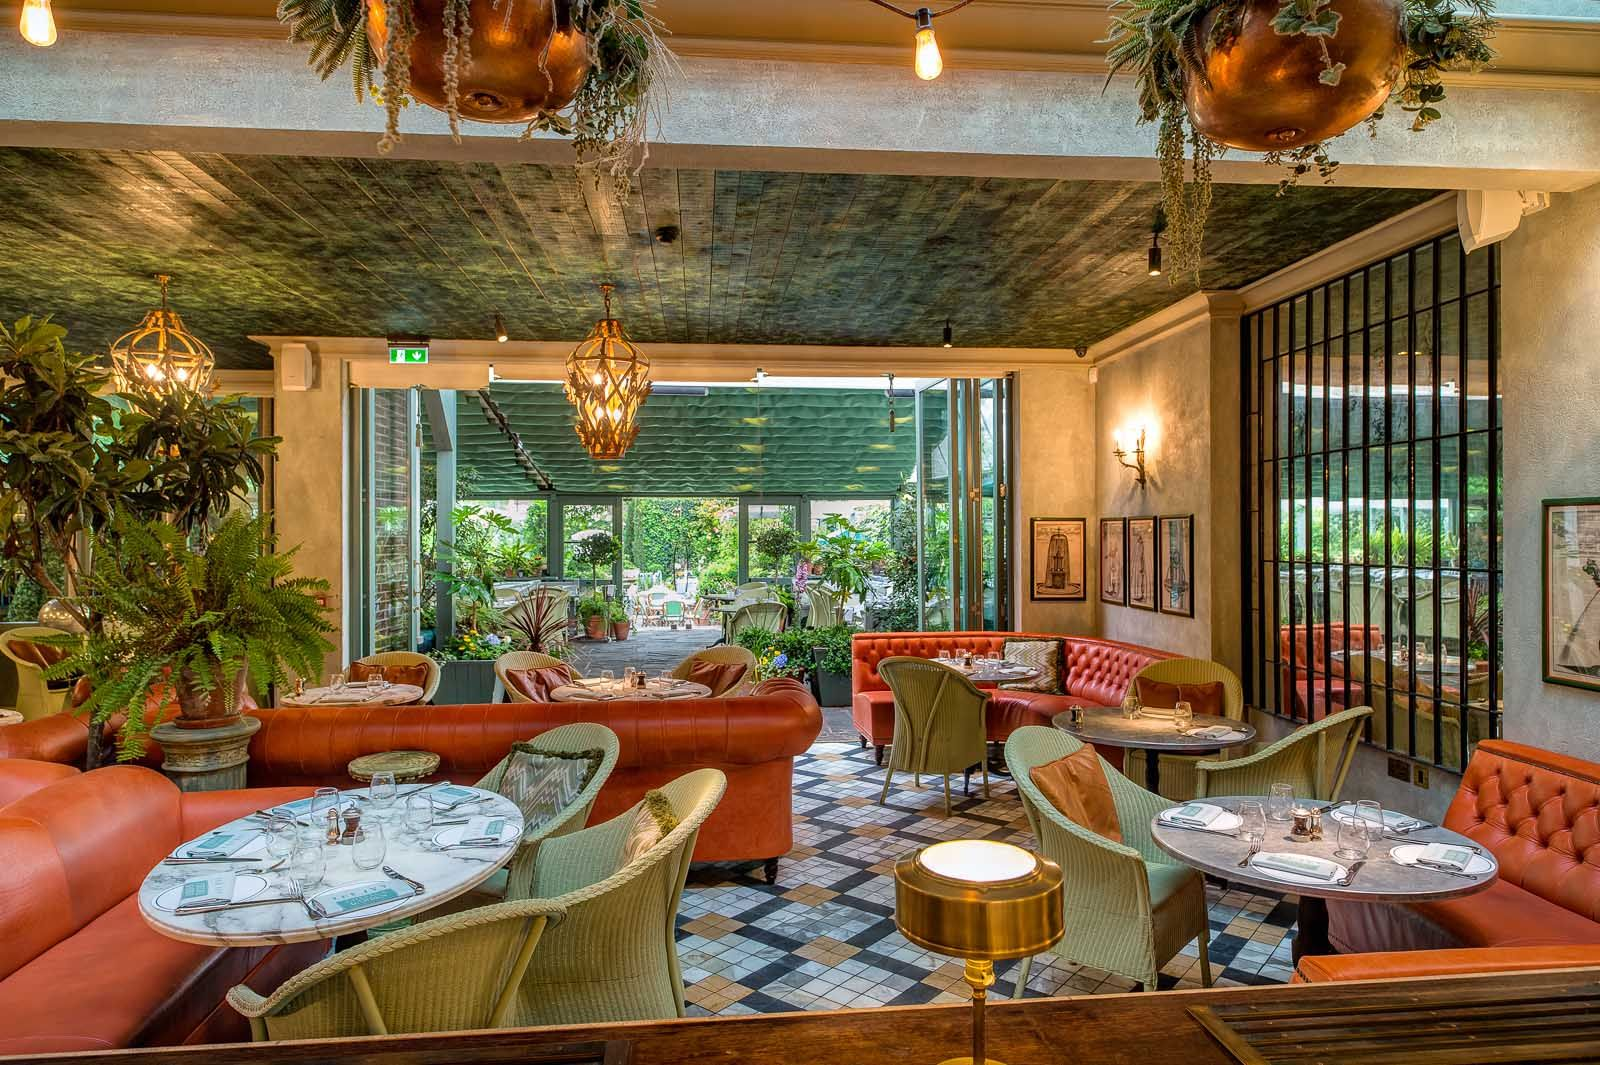 Food The Ivy Chelsea Garden Tube Sloane Square in 2019